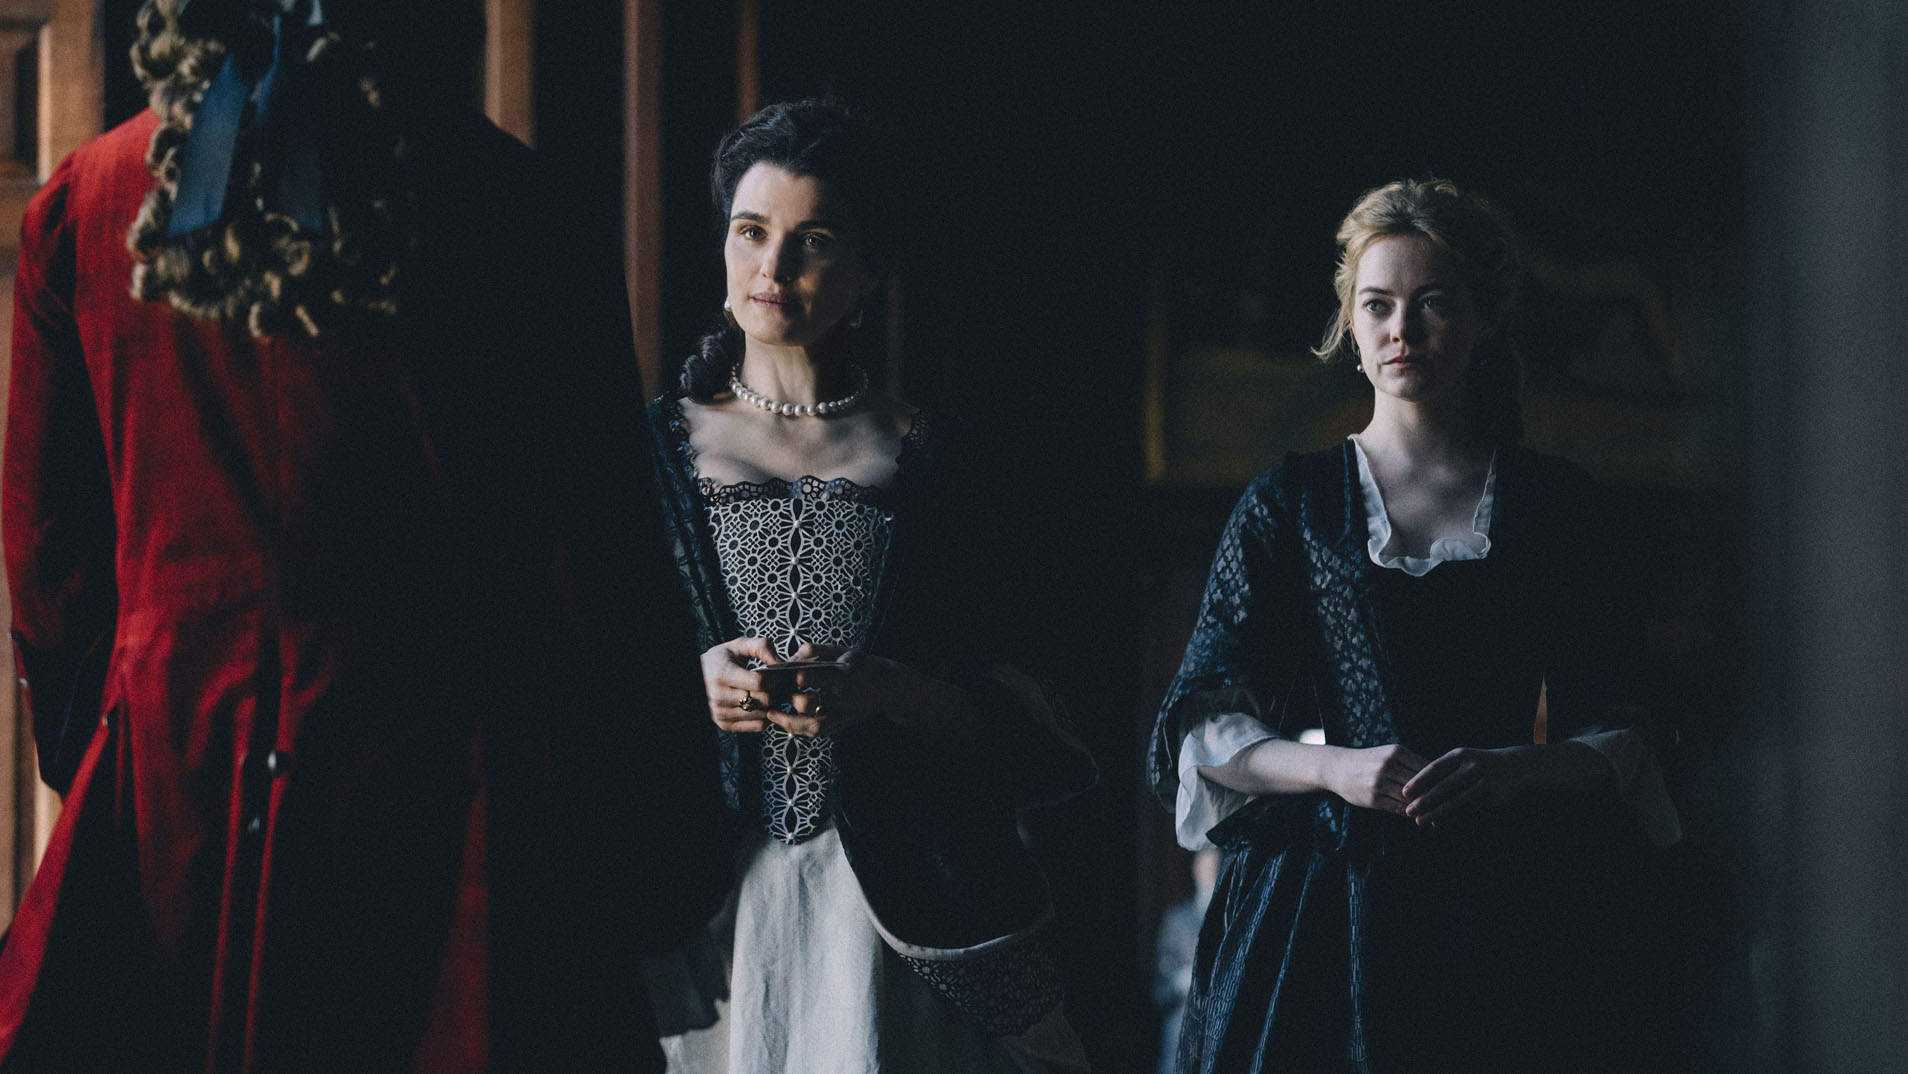 Rachel Weisz 'The Favourite' interviewed by The Vulture.